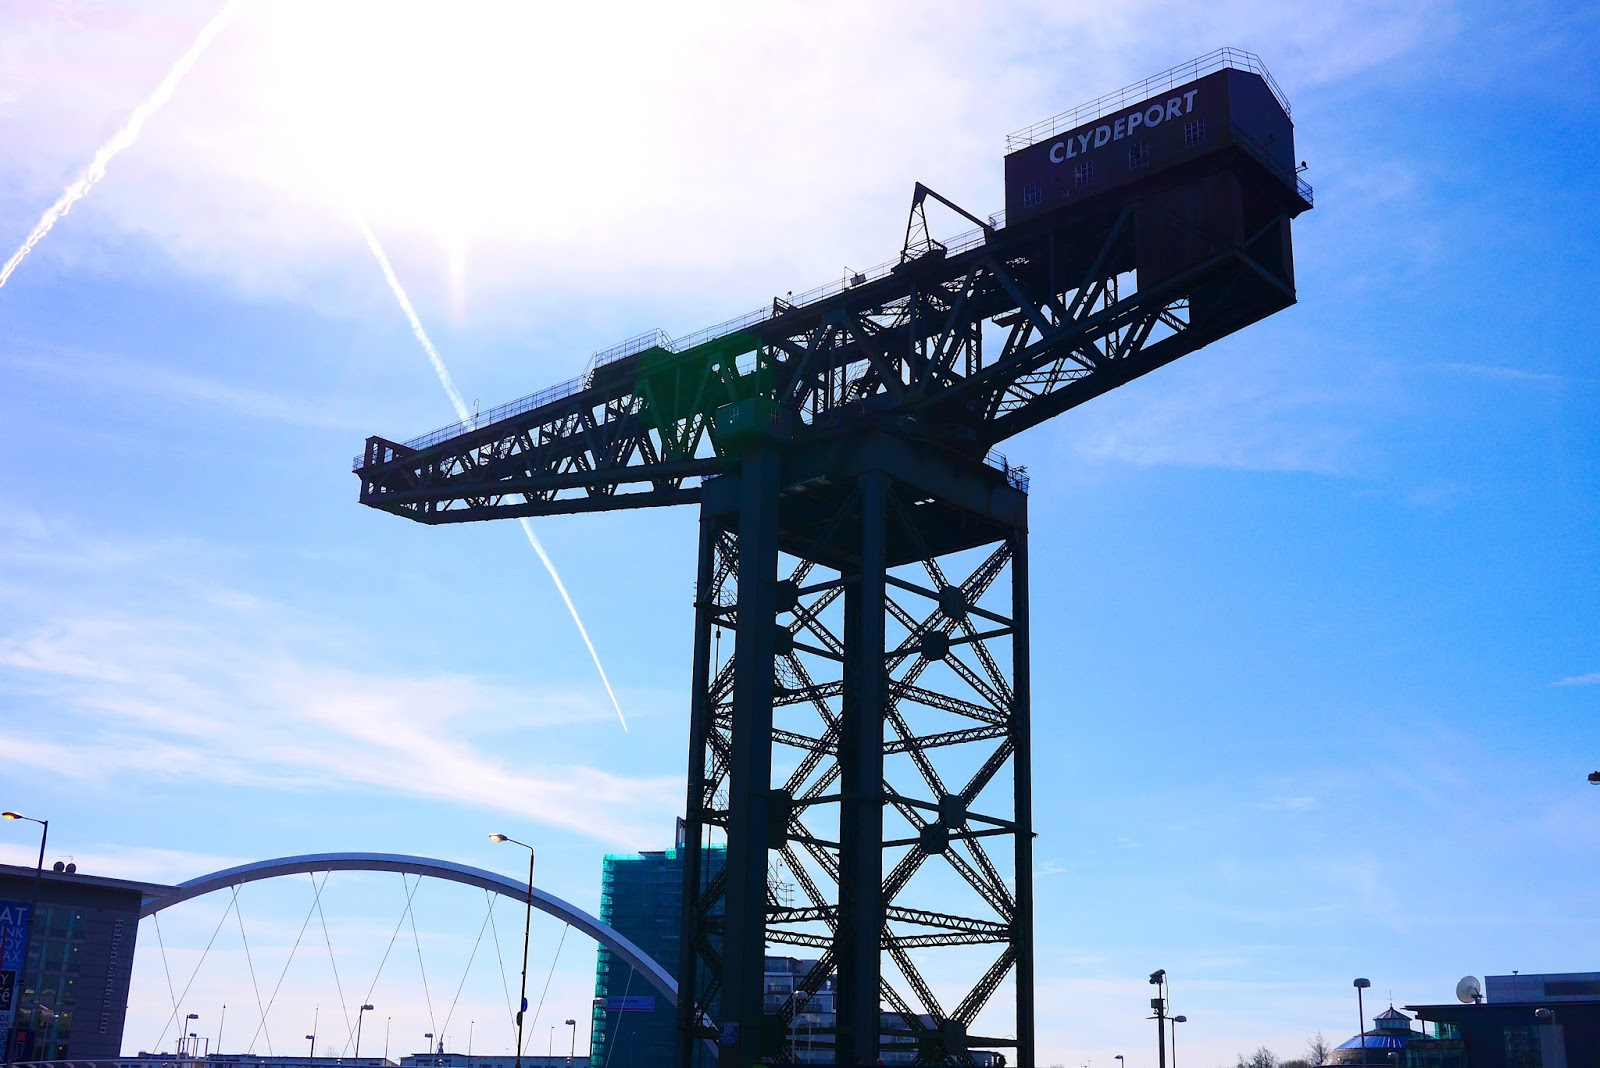 Cal Mc Travels, Finniestion Crane, Glasgow 5K